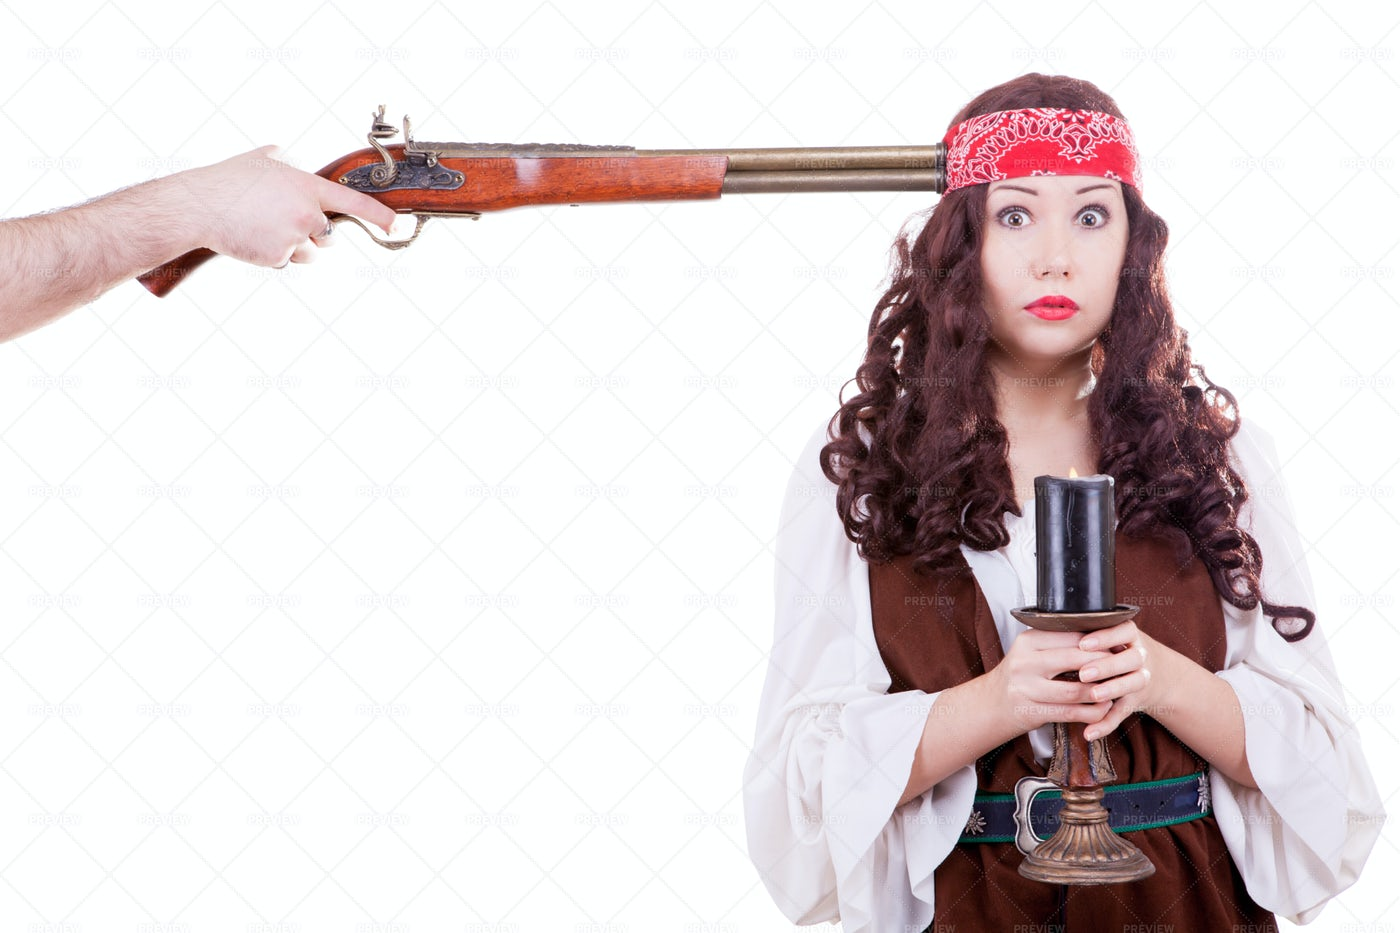 Pirate With Musket At Head: Stock Photos